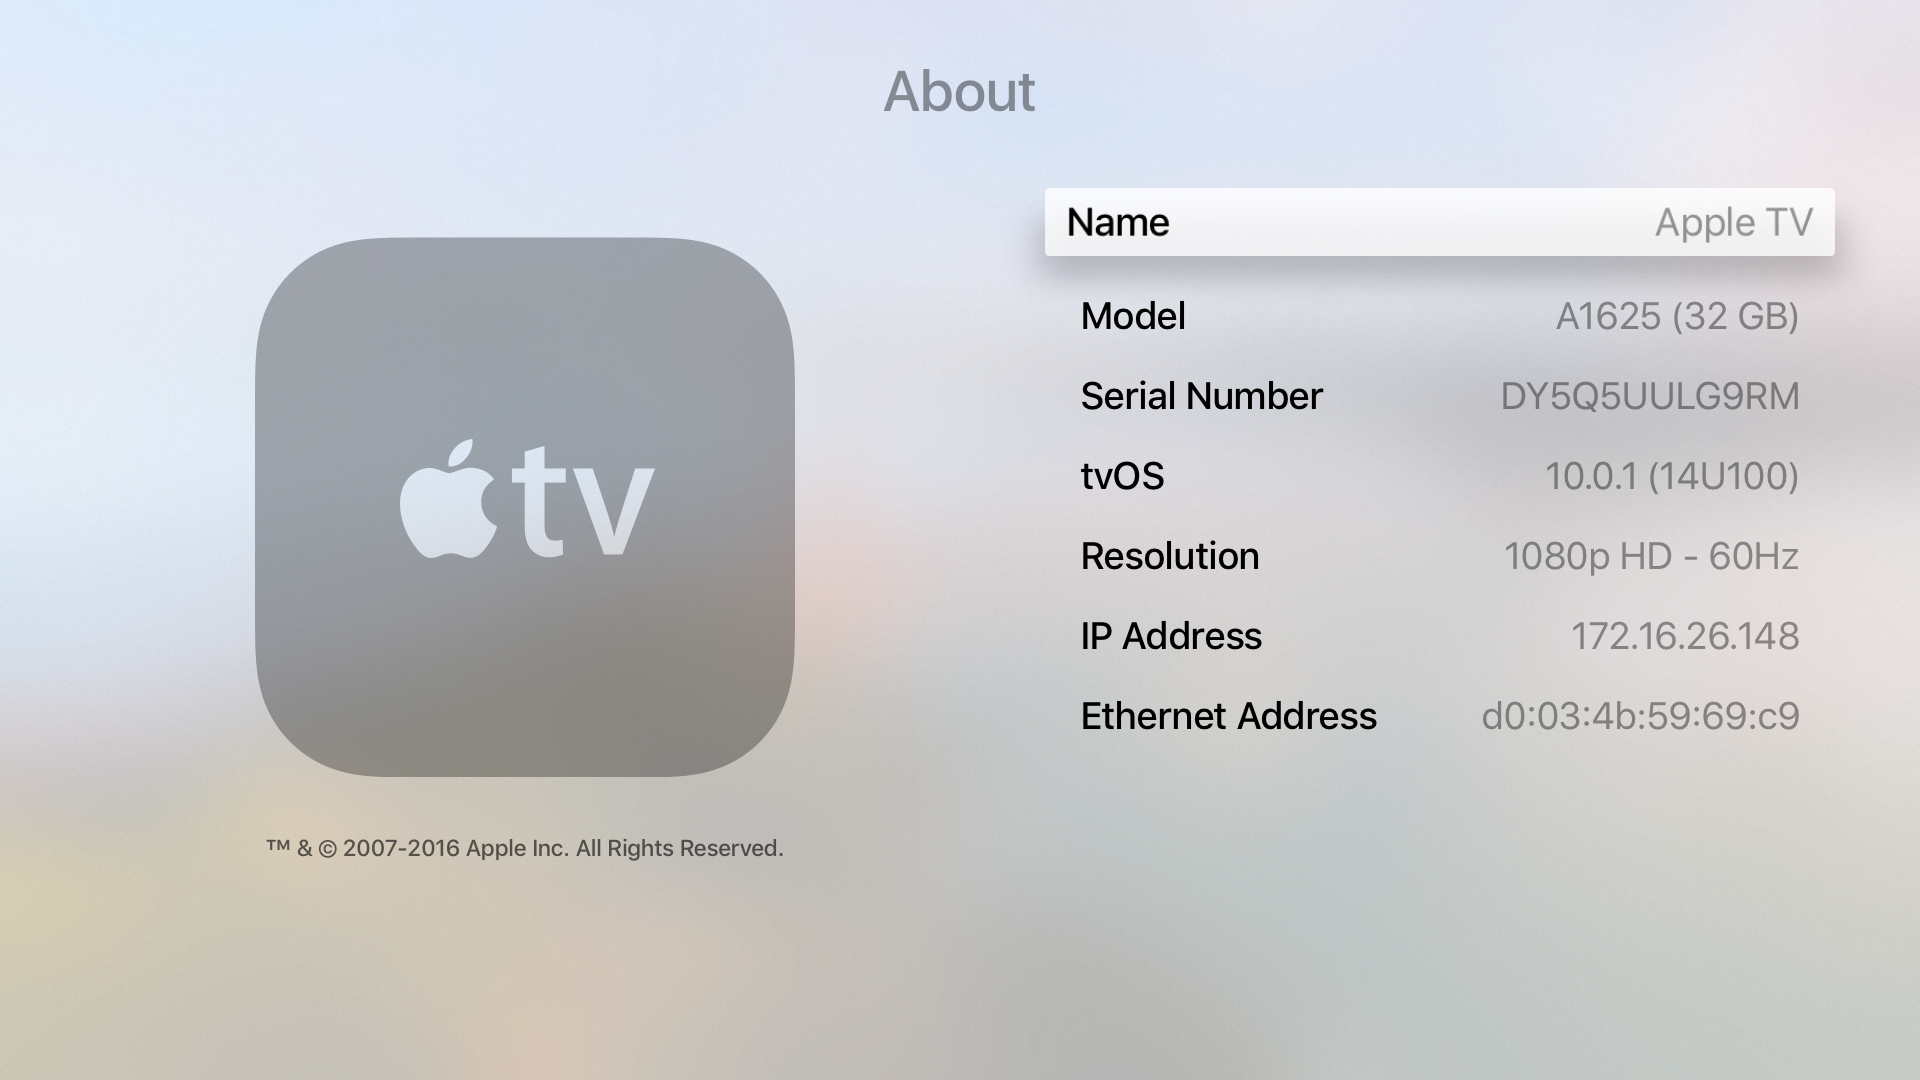 appletv update16 using apple tv at ucsd apple tv wiring diagram at nearapp.co